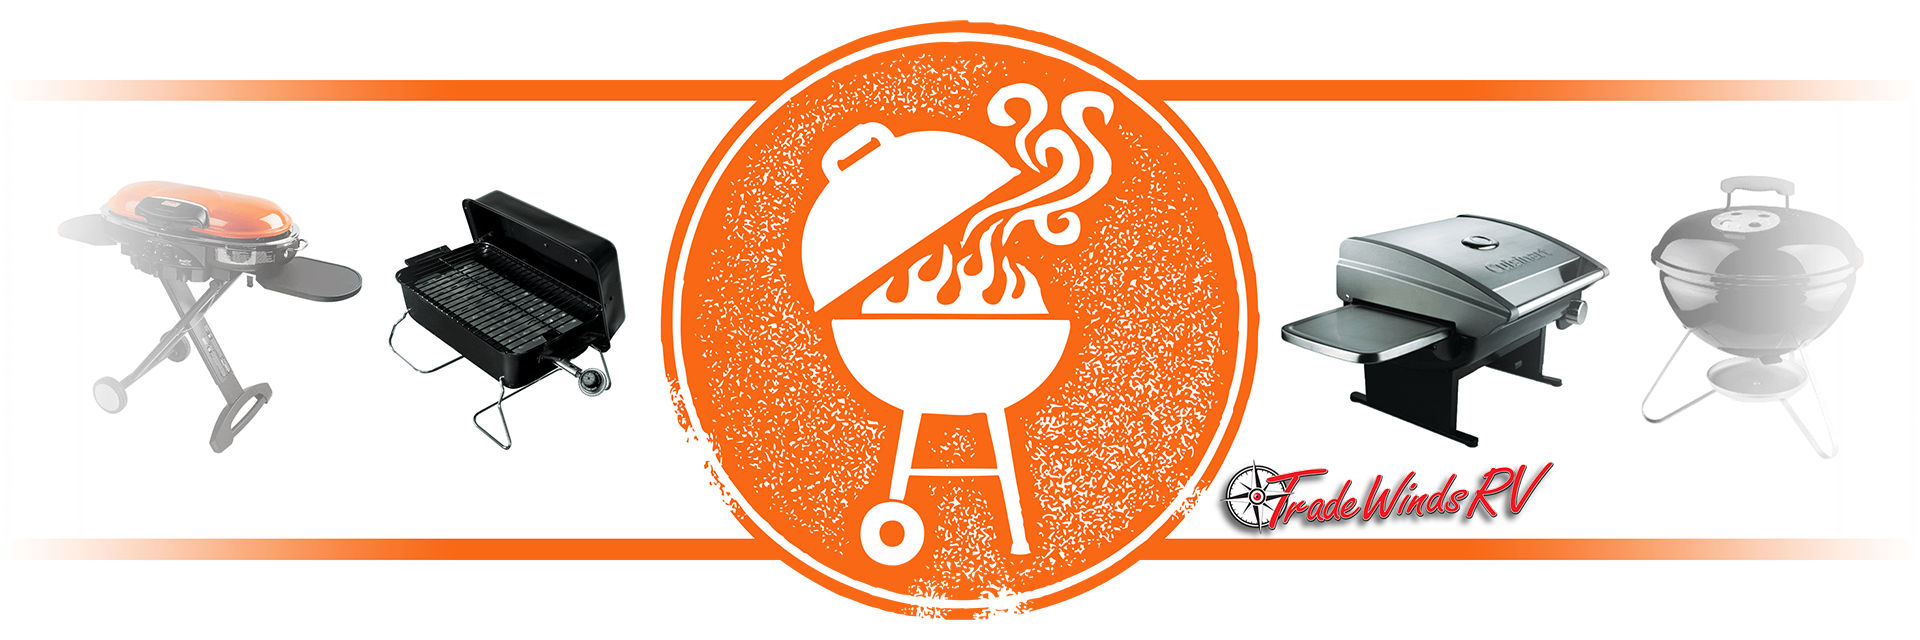 Portable Outdoor Grills Banner